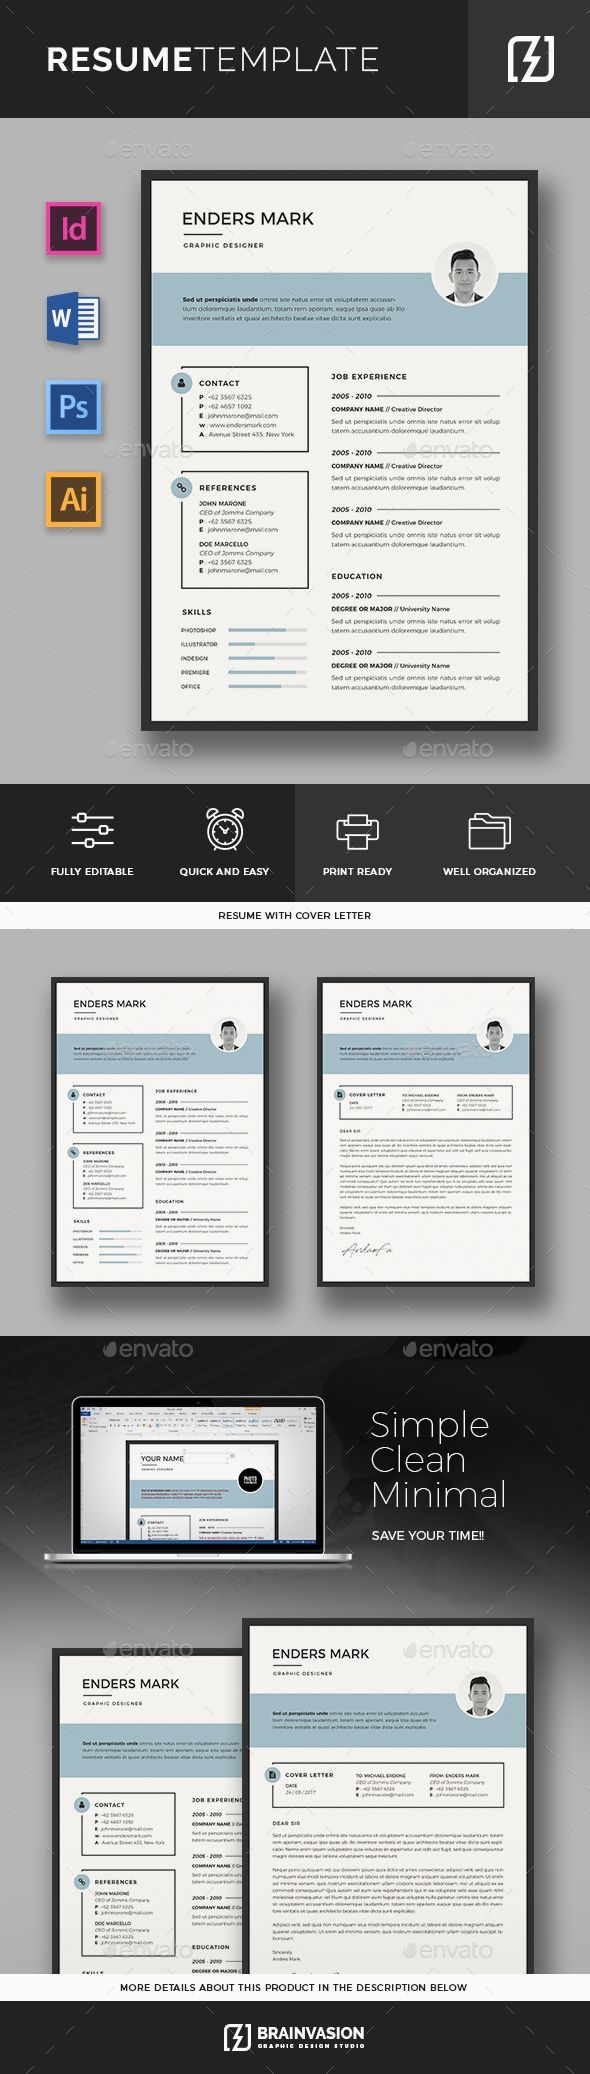 military resume format%0A Resume Template